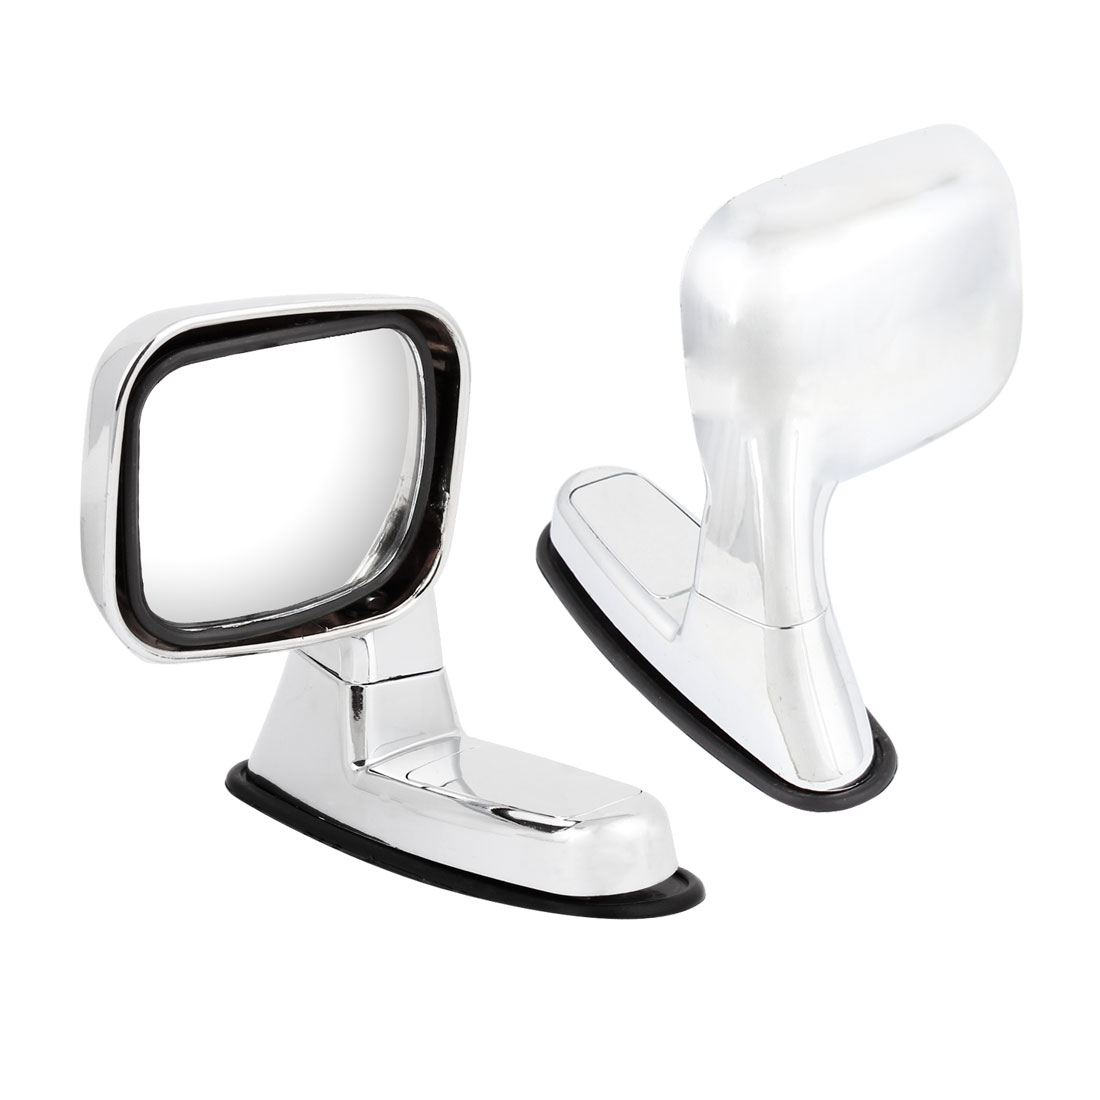 2 Pcs Silver Tone Rotatable Side Rearview Assistant Fender Mirror for Car Auto